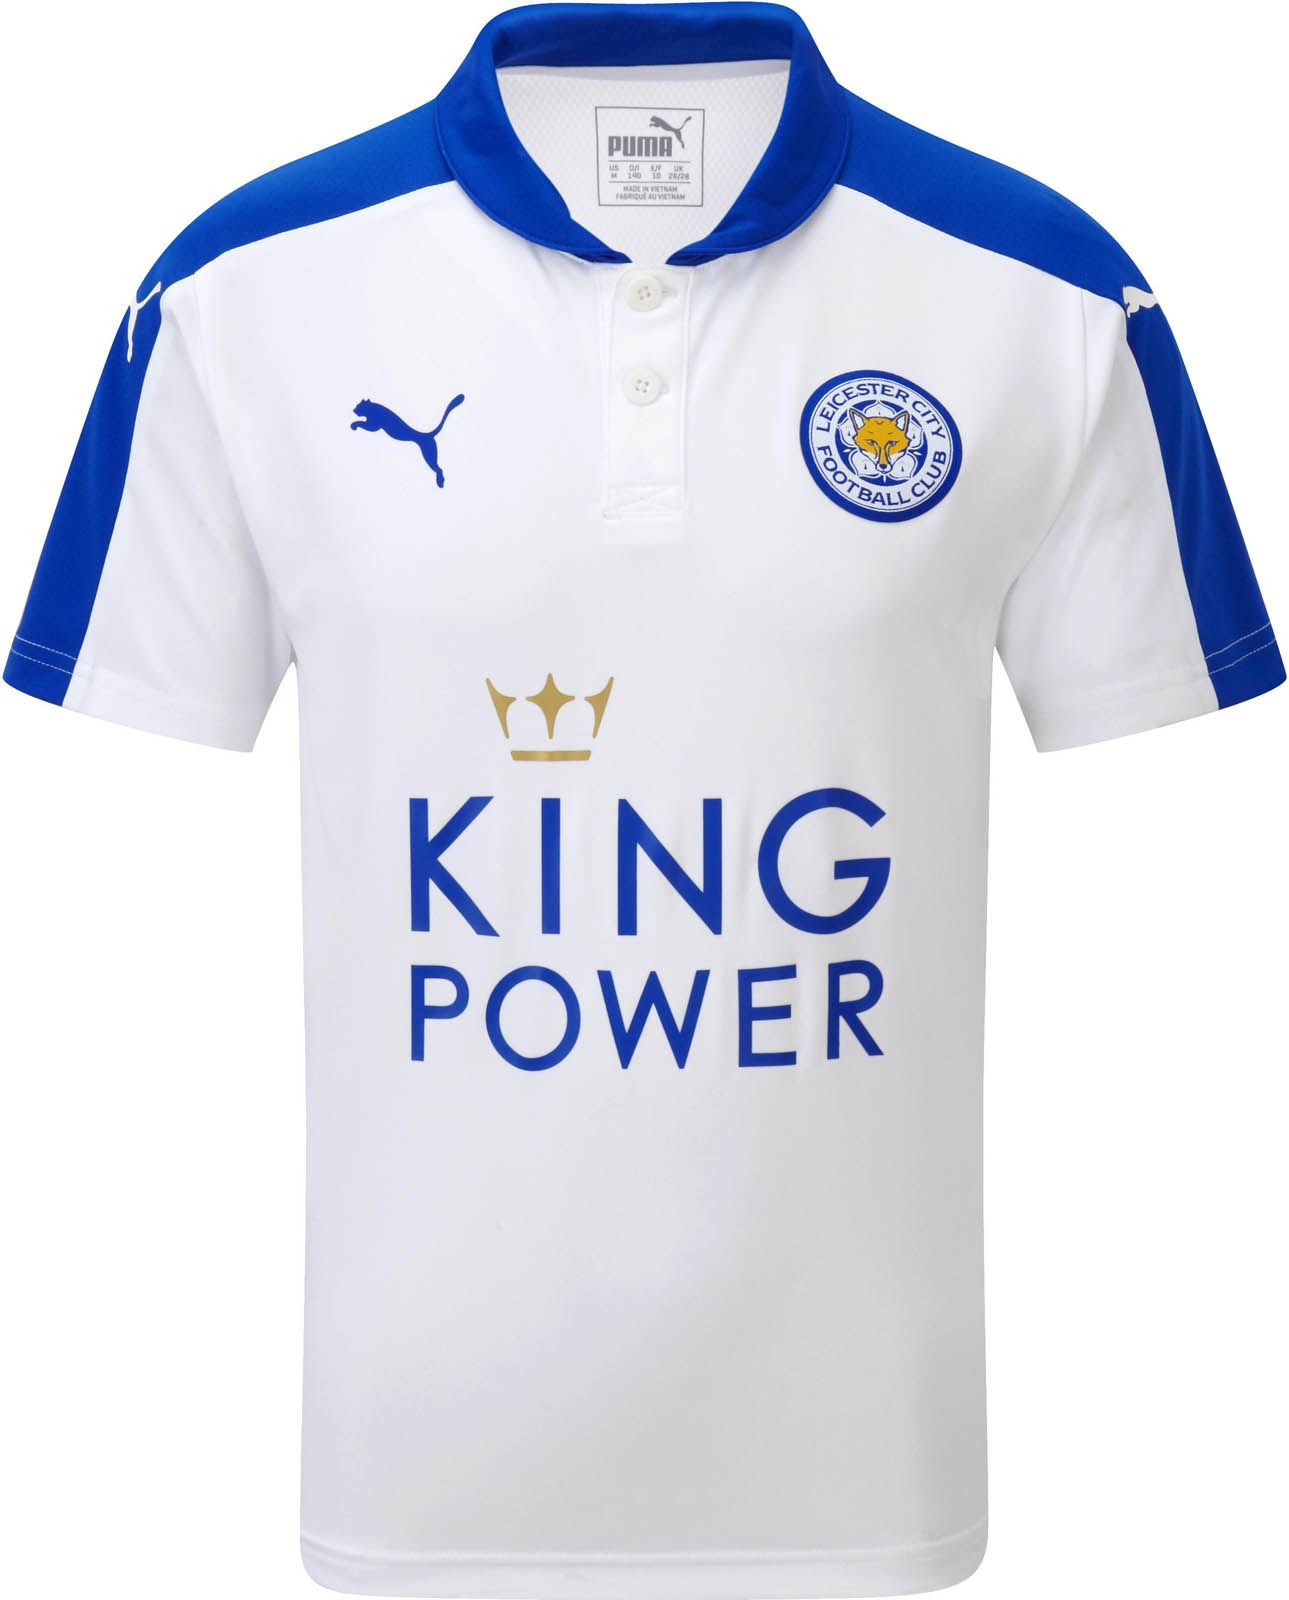 Leicester City FC (England) - 2015/2016 Puma Third Shirt